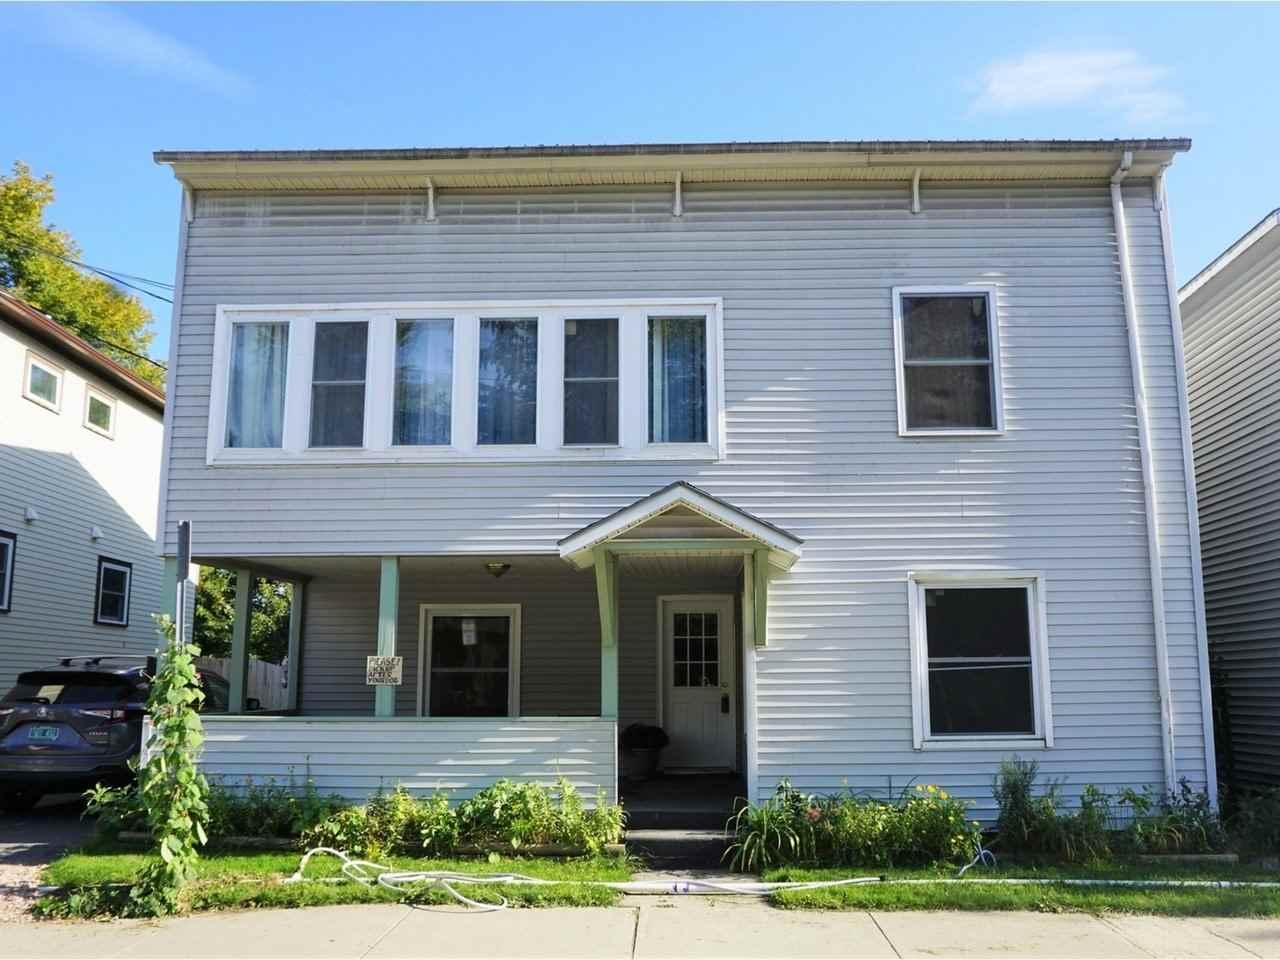 Located just a few blocks from the vibrant Winooski Circle- this lovely Duplex is ready for its new owners! Featuring two 3-bedroom apartments- currently owner occupied, turn-key and move in ready! The upstairs unit offers a spacious and lovely back deck, open living/dining/kitchen, and newer appliances including, stove, fridge and washer/dryer. Downstairs also has a 3-bedroom apartment with new floors and appliances. Abundant off-street parking and even room for a chicken coop and small garden! Great opportunity to owner occupy in Winooski or add to your portfolio with an updated duplex that will attract tenants in both Burlington and Winooski markets due to its proximity to University of Vermont Medical Center, Colleges, and Interstate 89!